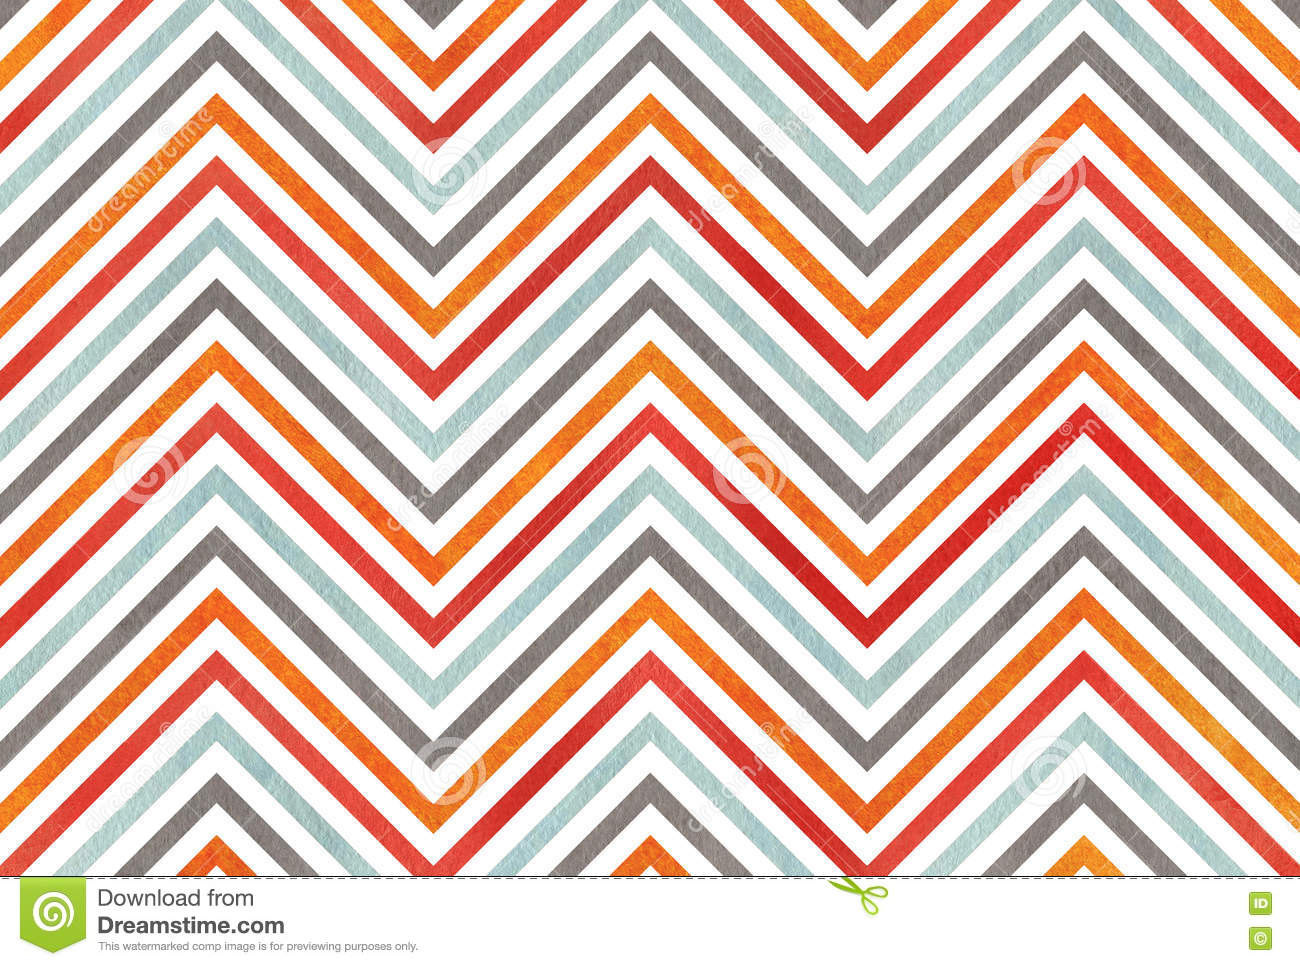 Red and grey chevron background